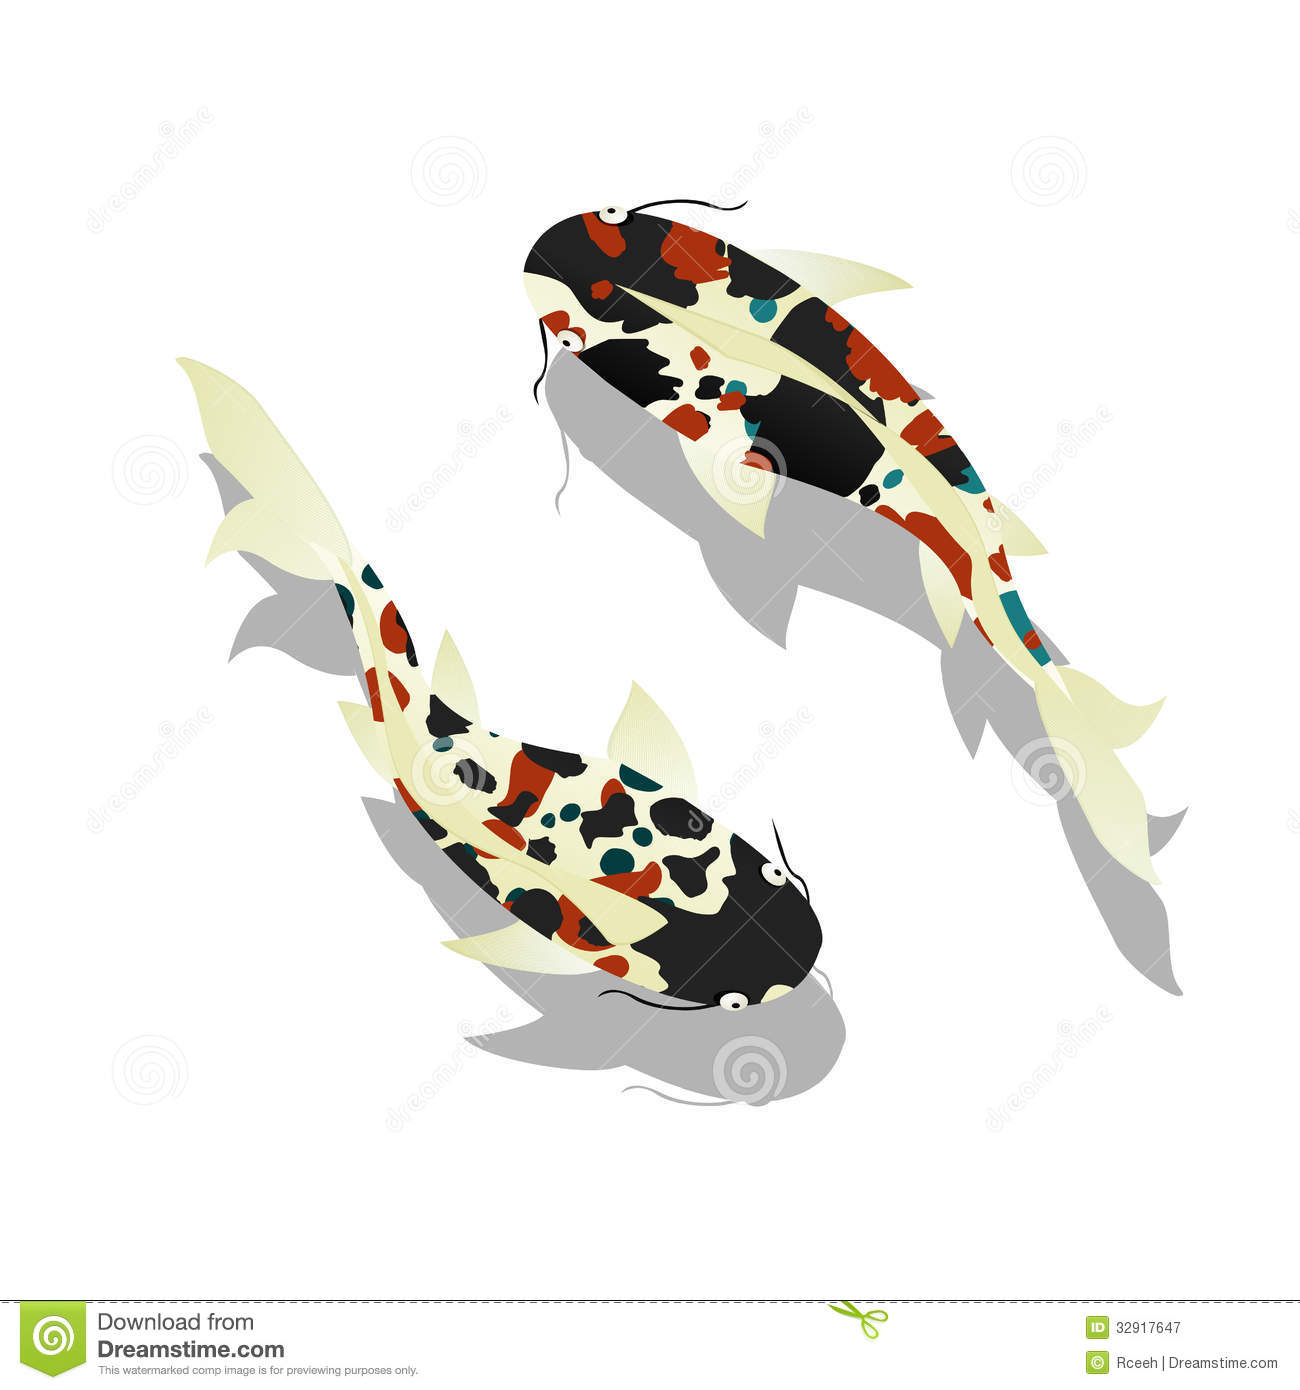 Carp koi fish royalty free stock photography image for Koi fish vector